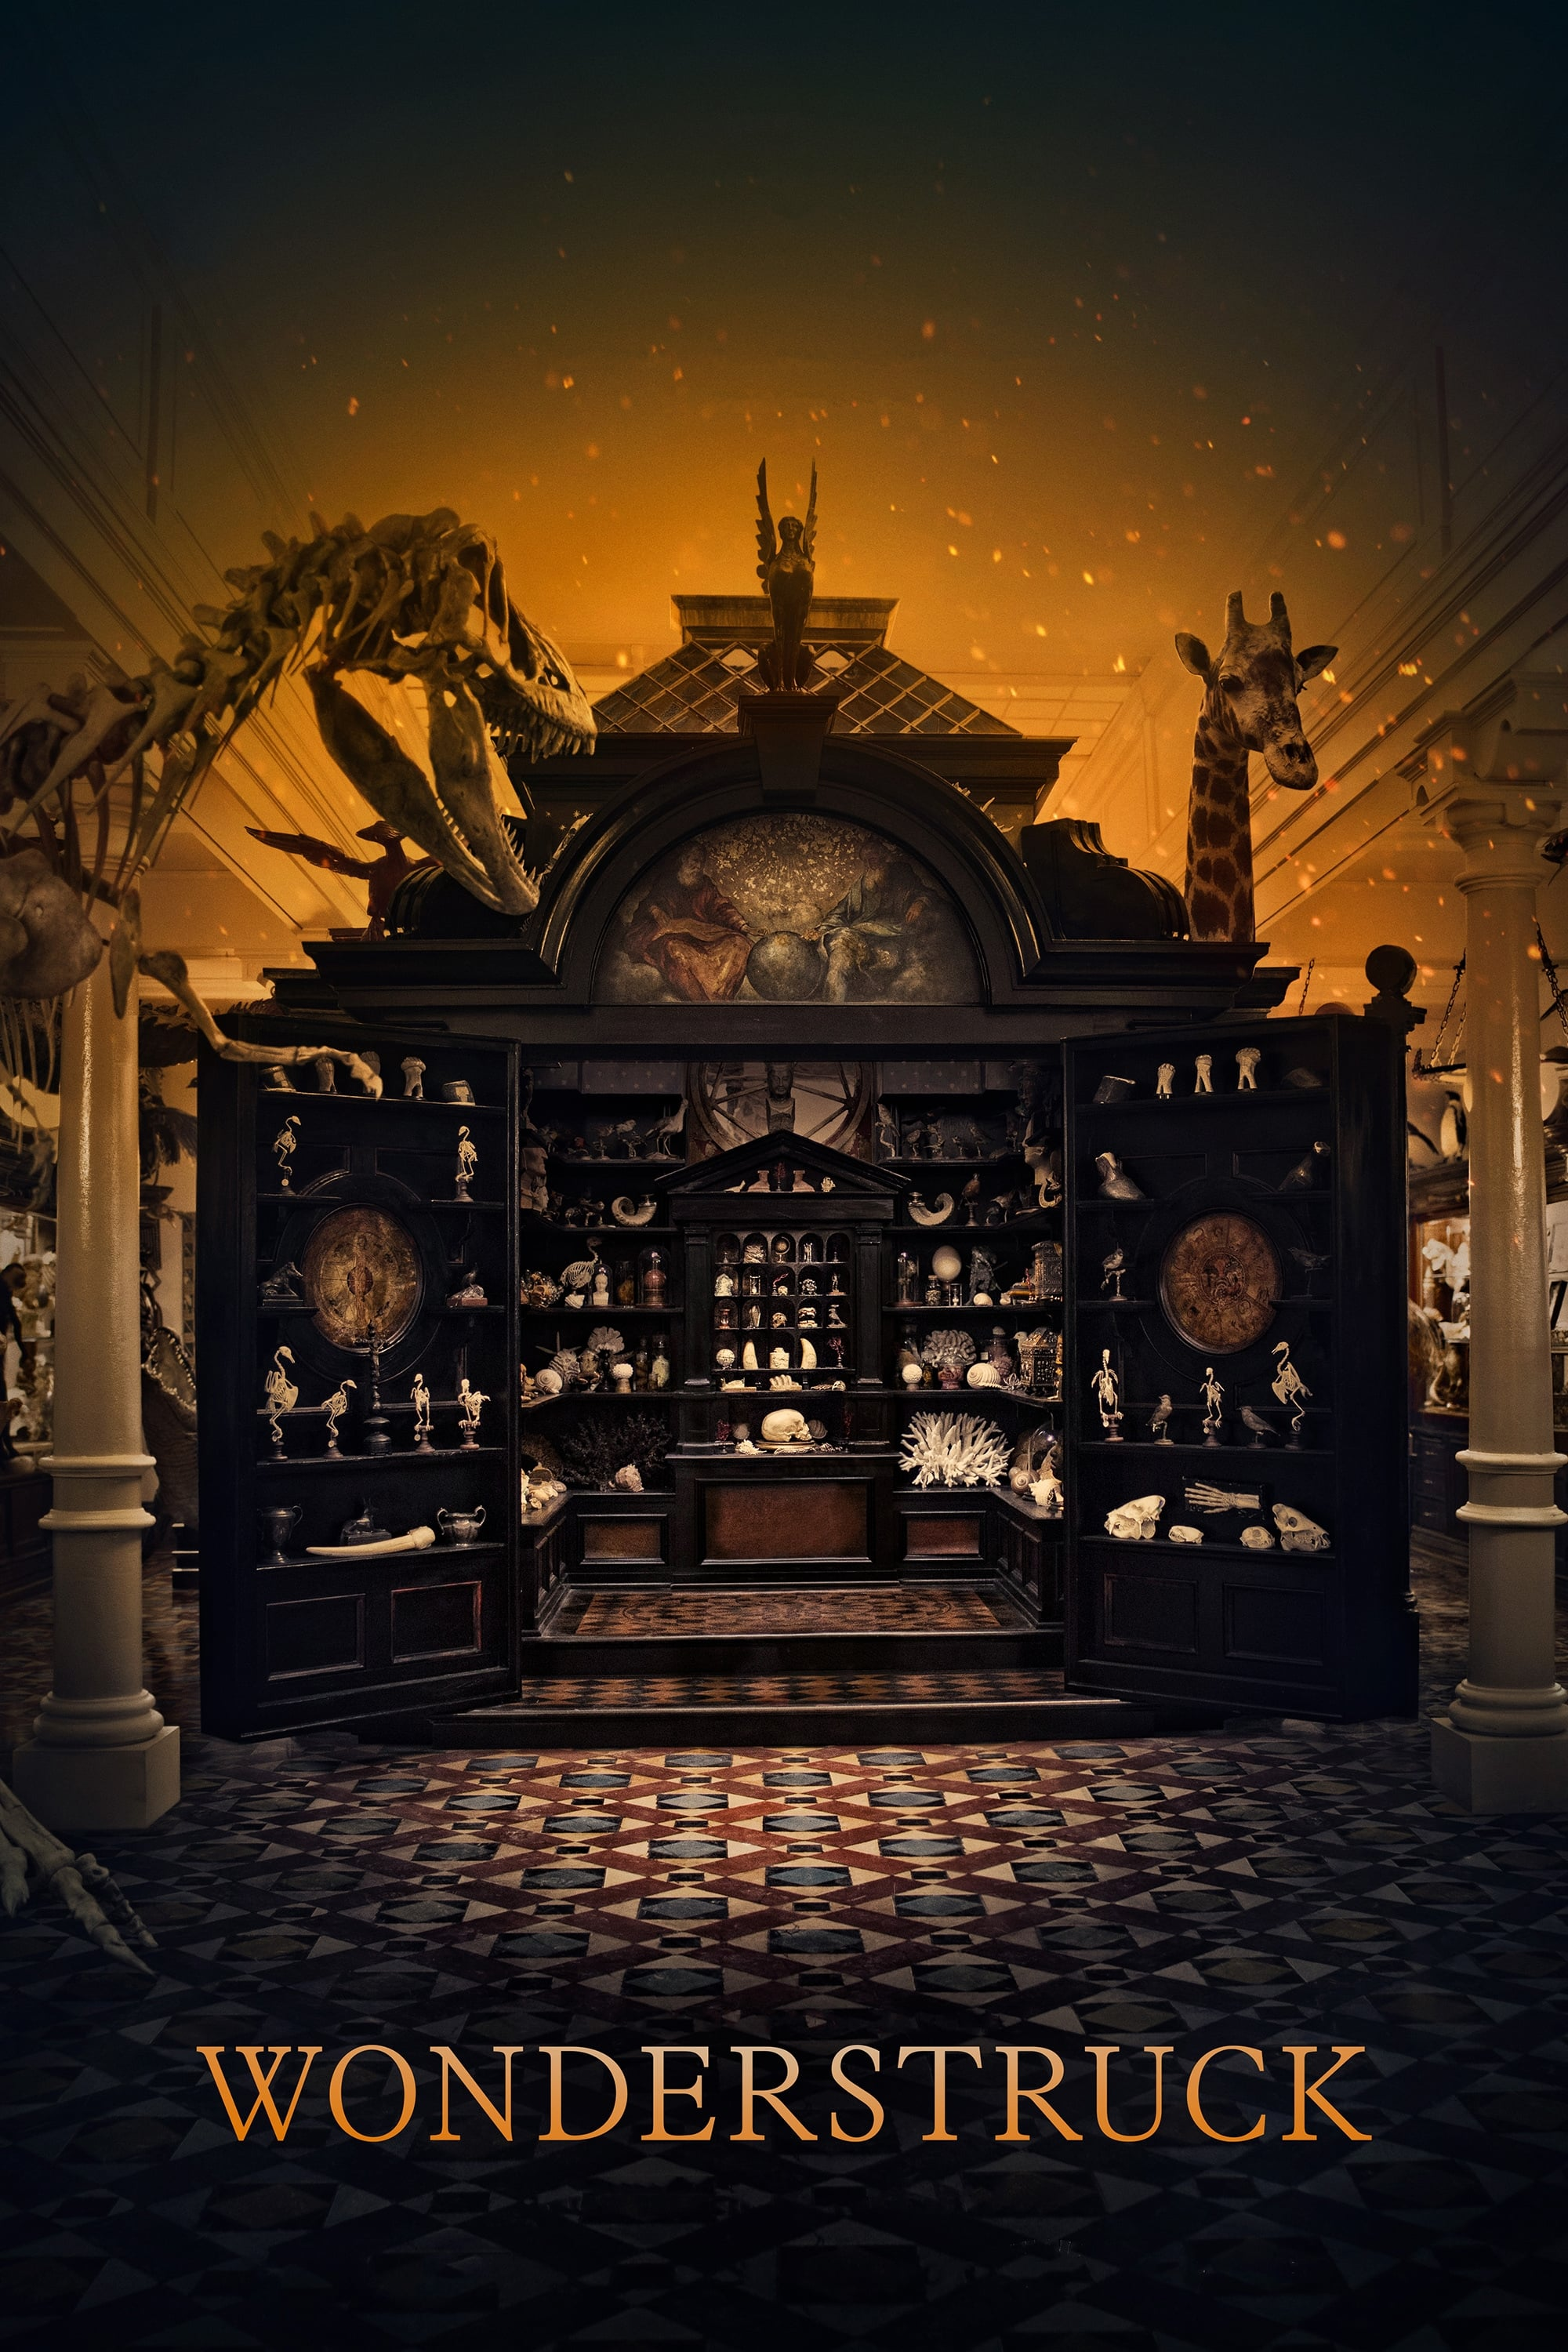 image for Wonderstruck